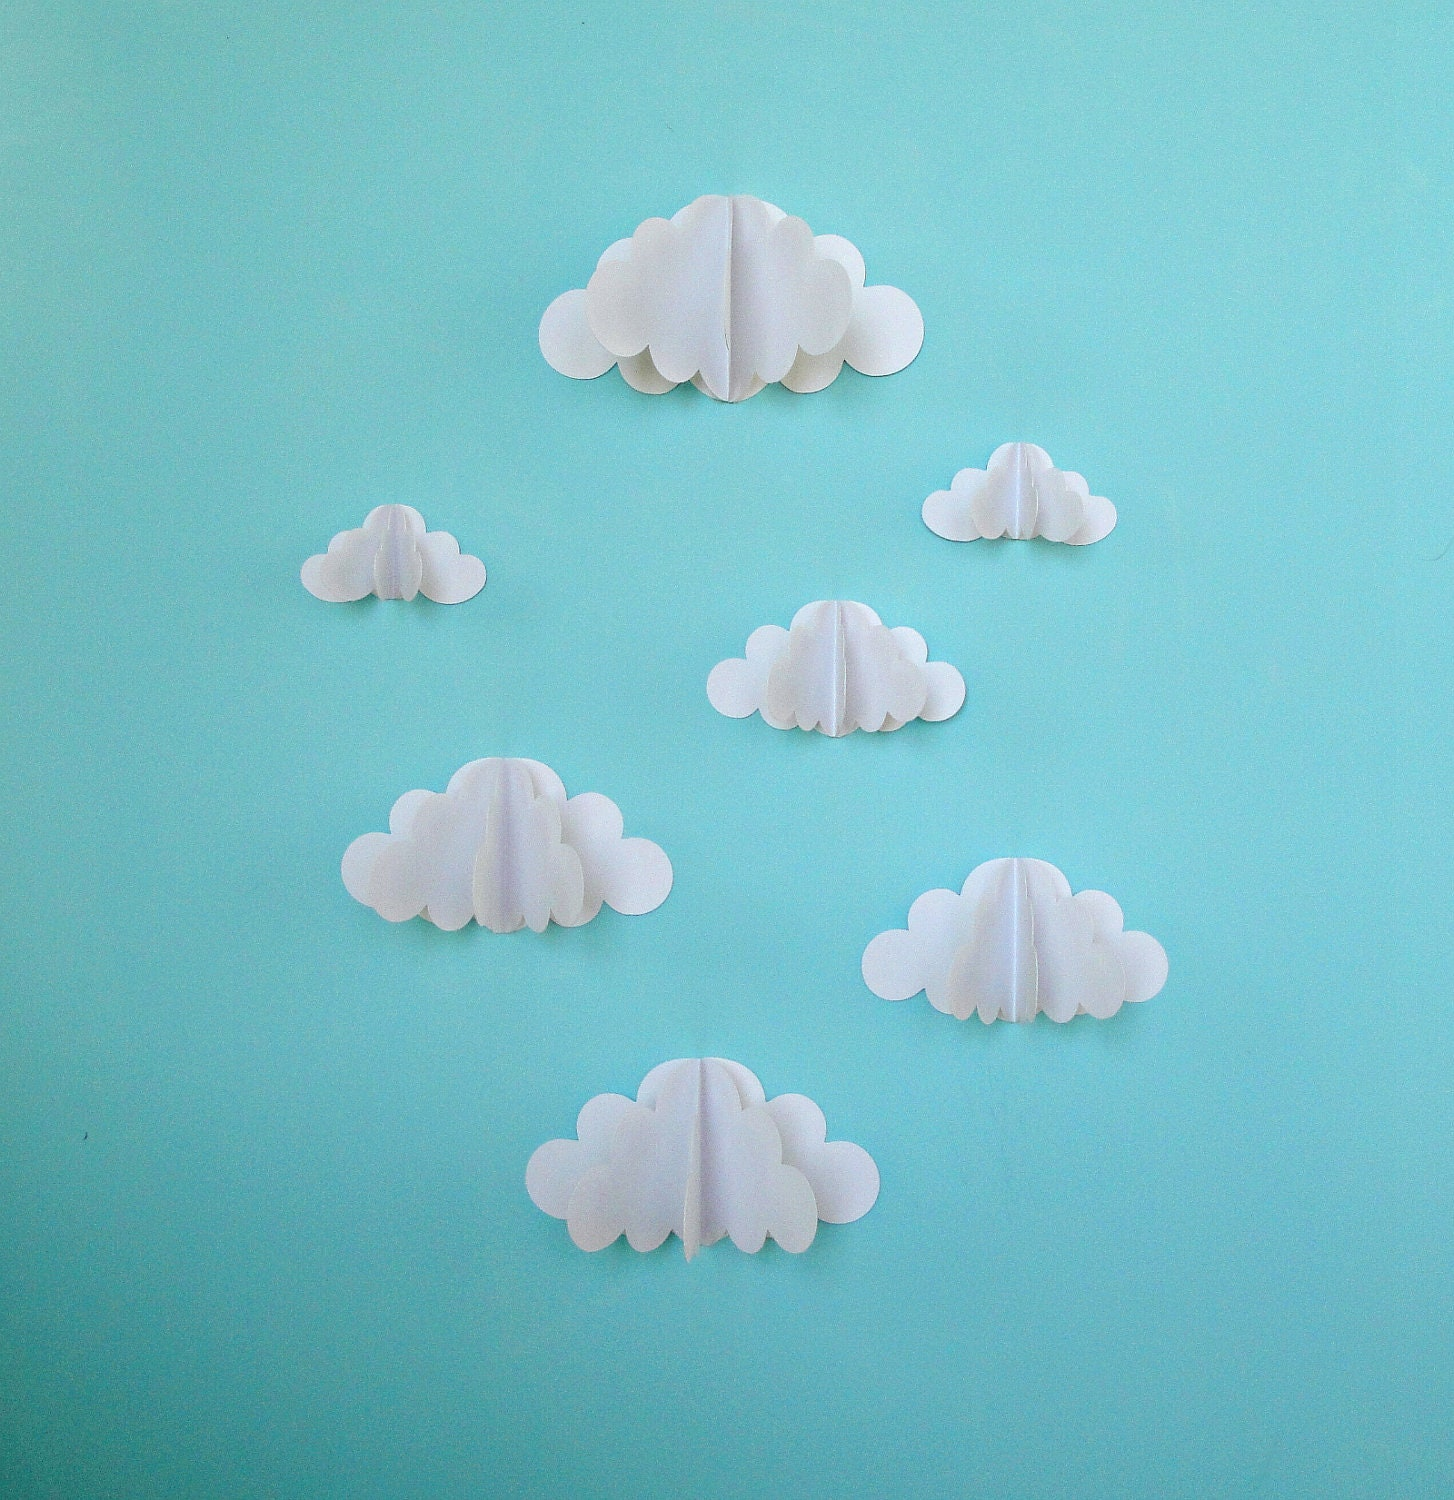 3D Paper Wall Clouds 3D Paper Wall Art/Wall Decor/Wall